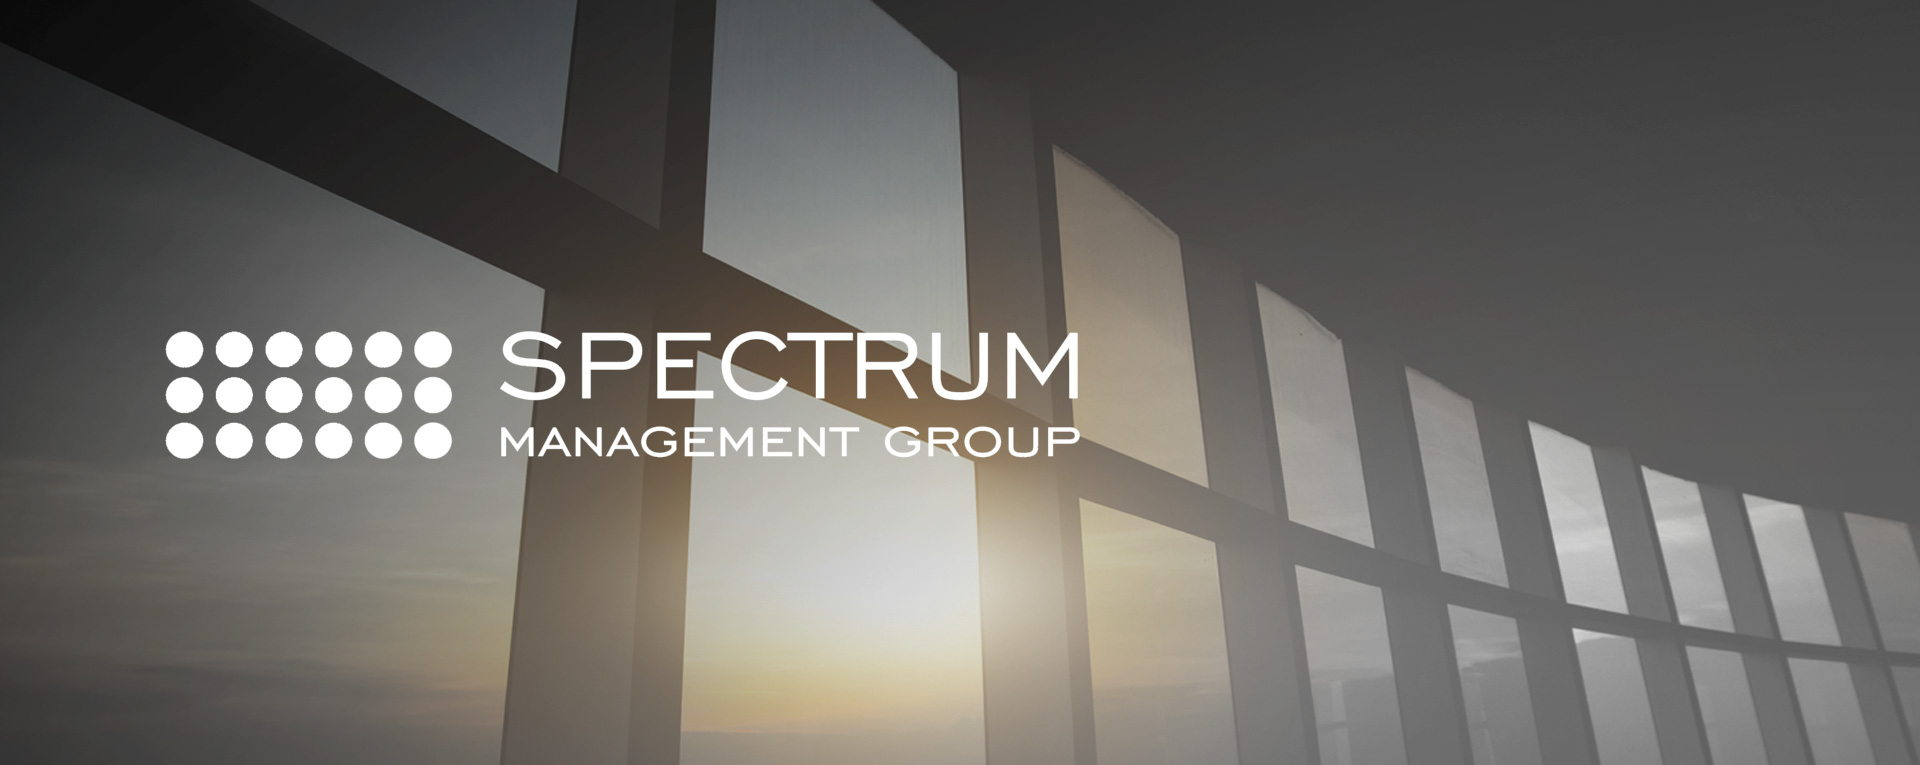 Spectrum Management Group